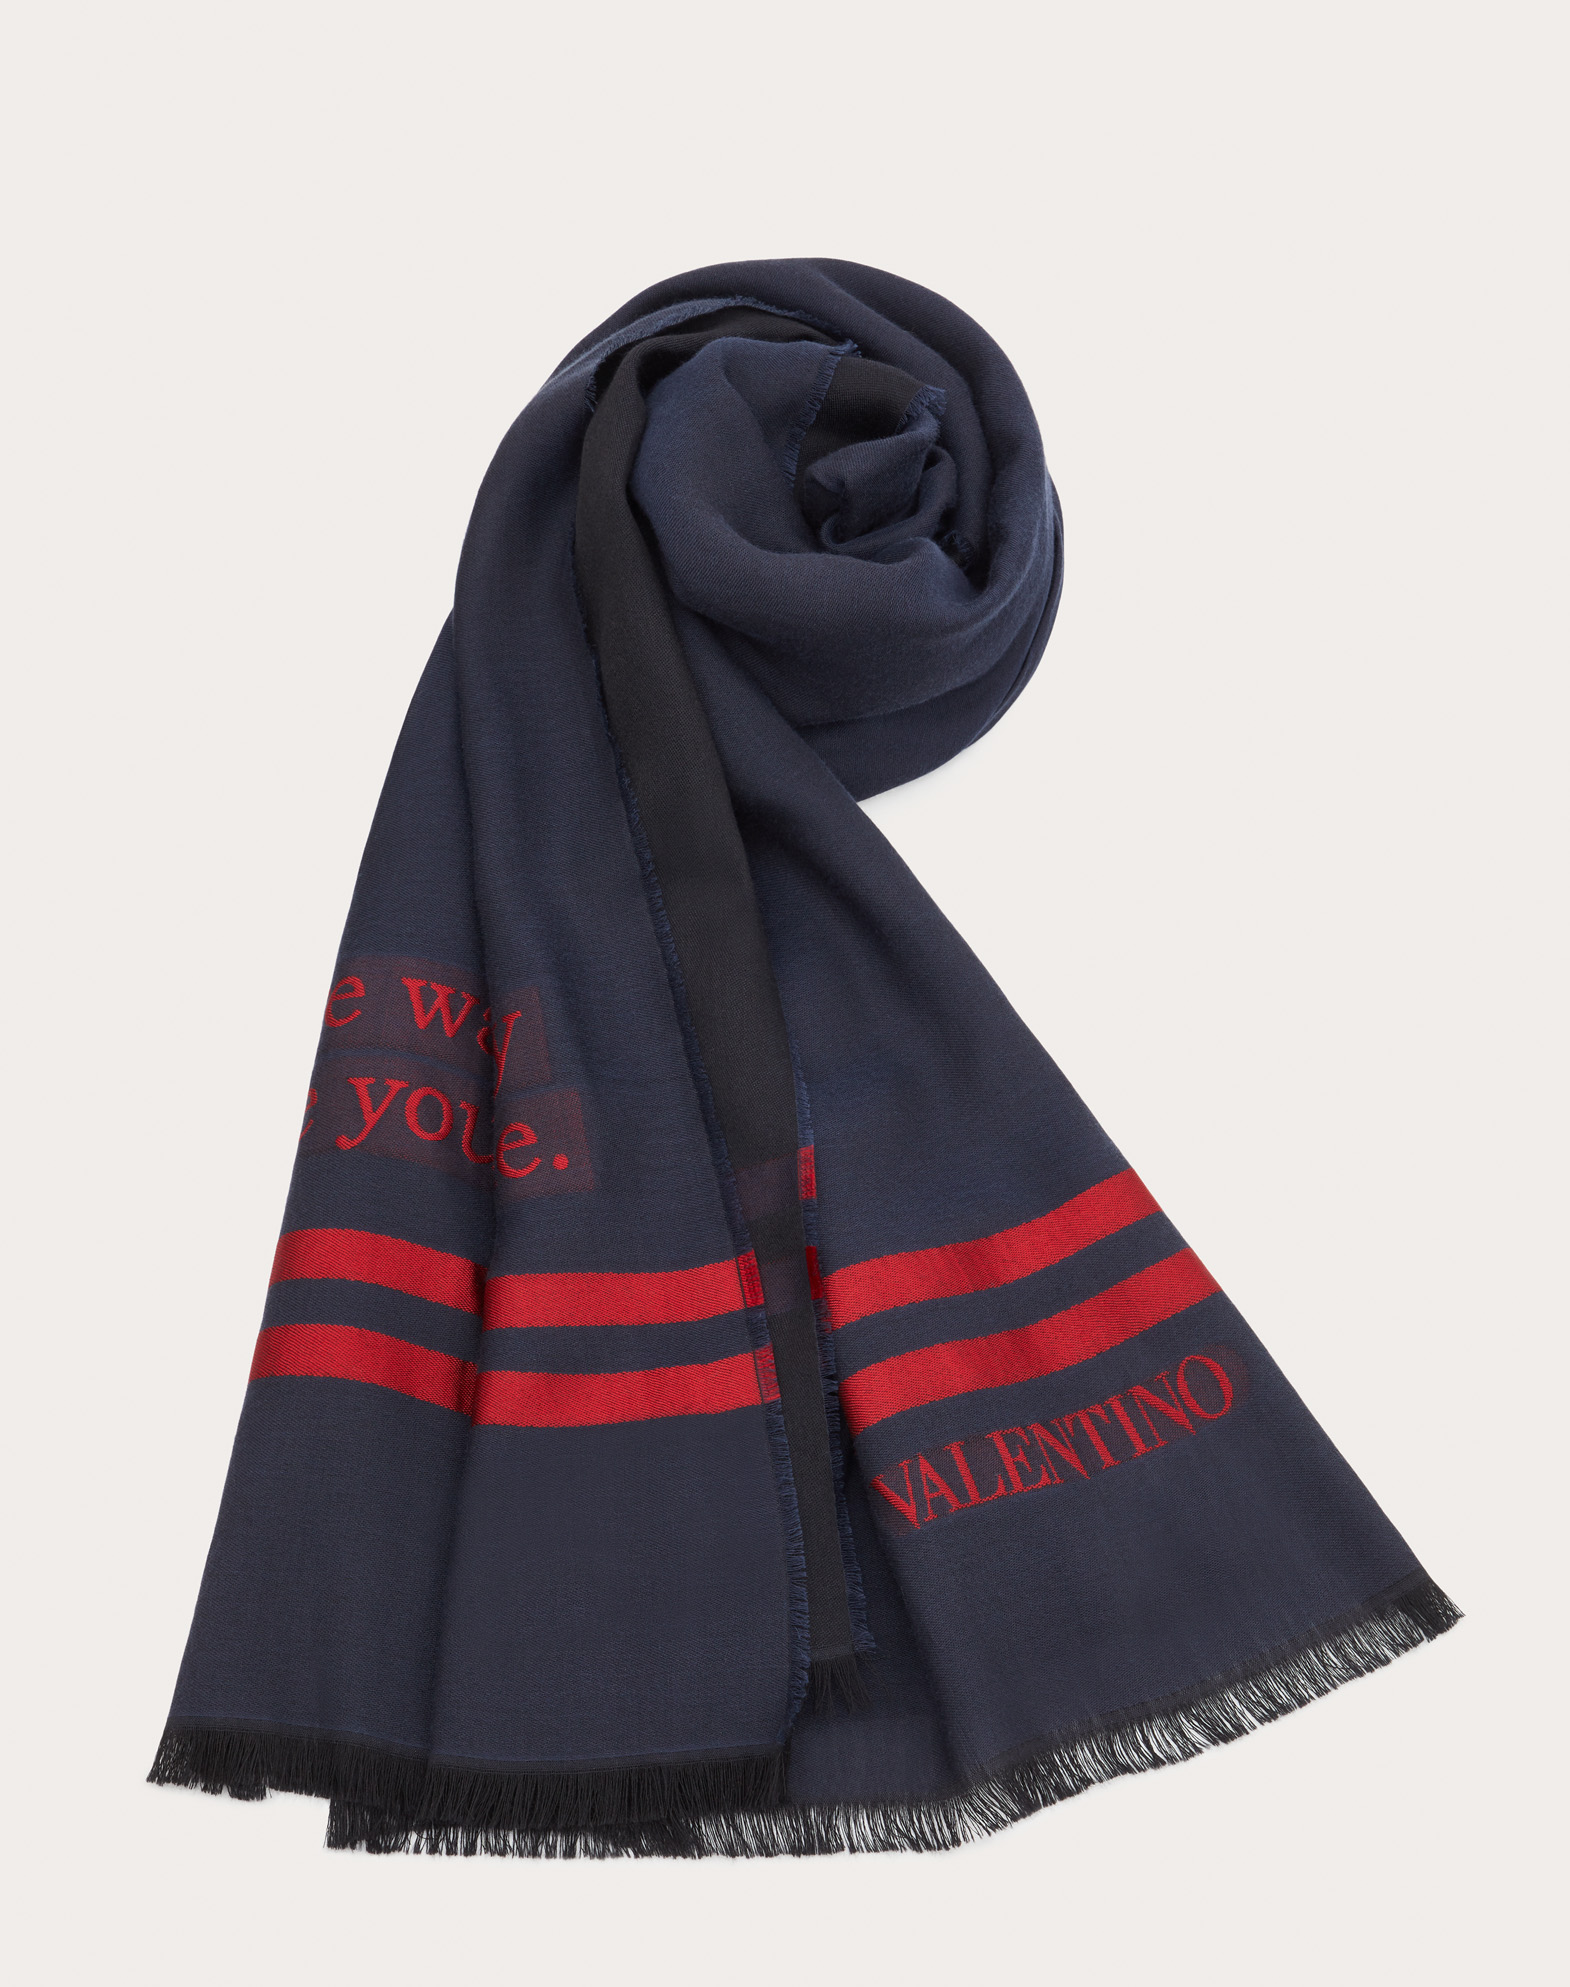 Valentino On Love Scarf in Wool, Cotton, and Silk